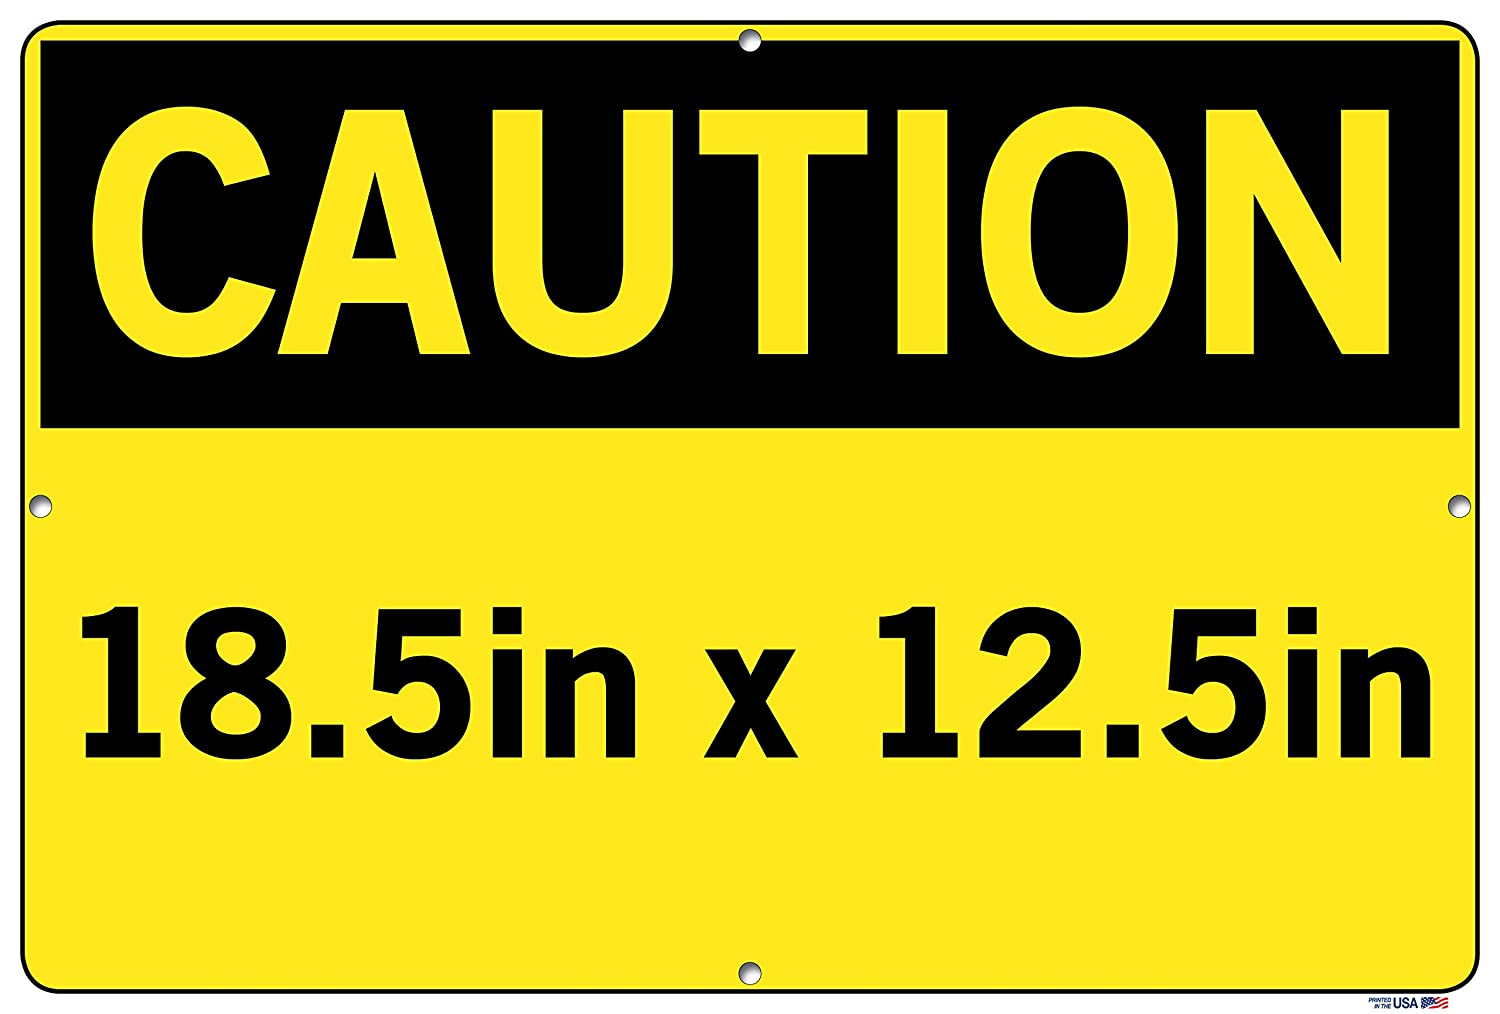 NO Puede ENTRAR Vestil Caution Sign SI-C-61-E-PS-040-S Polystyrene .040 Overall Size 20.5W x 14.5H DO NOT Enter